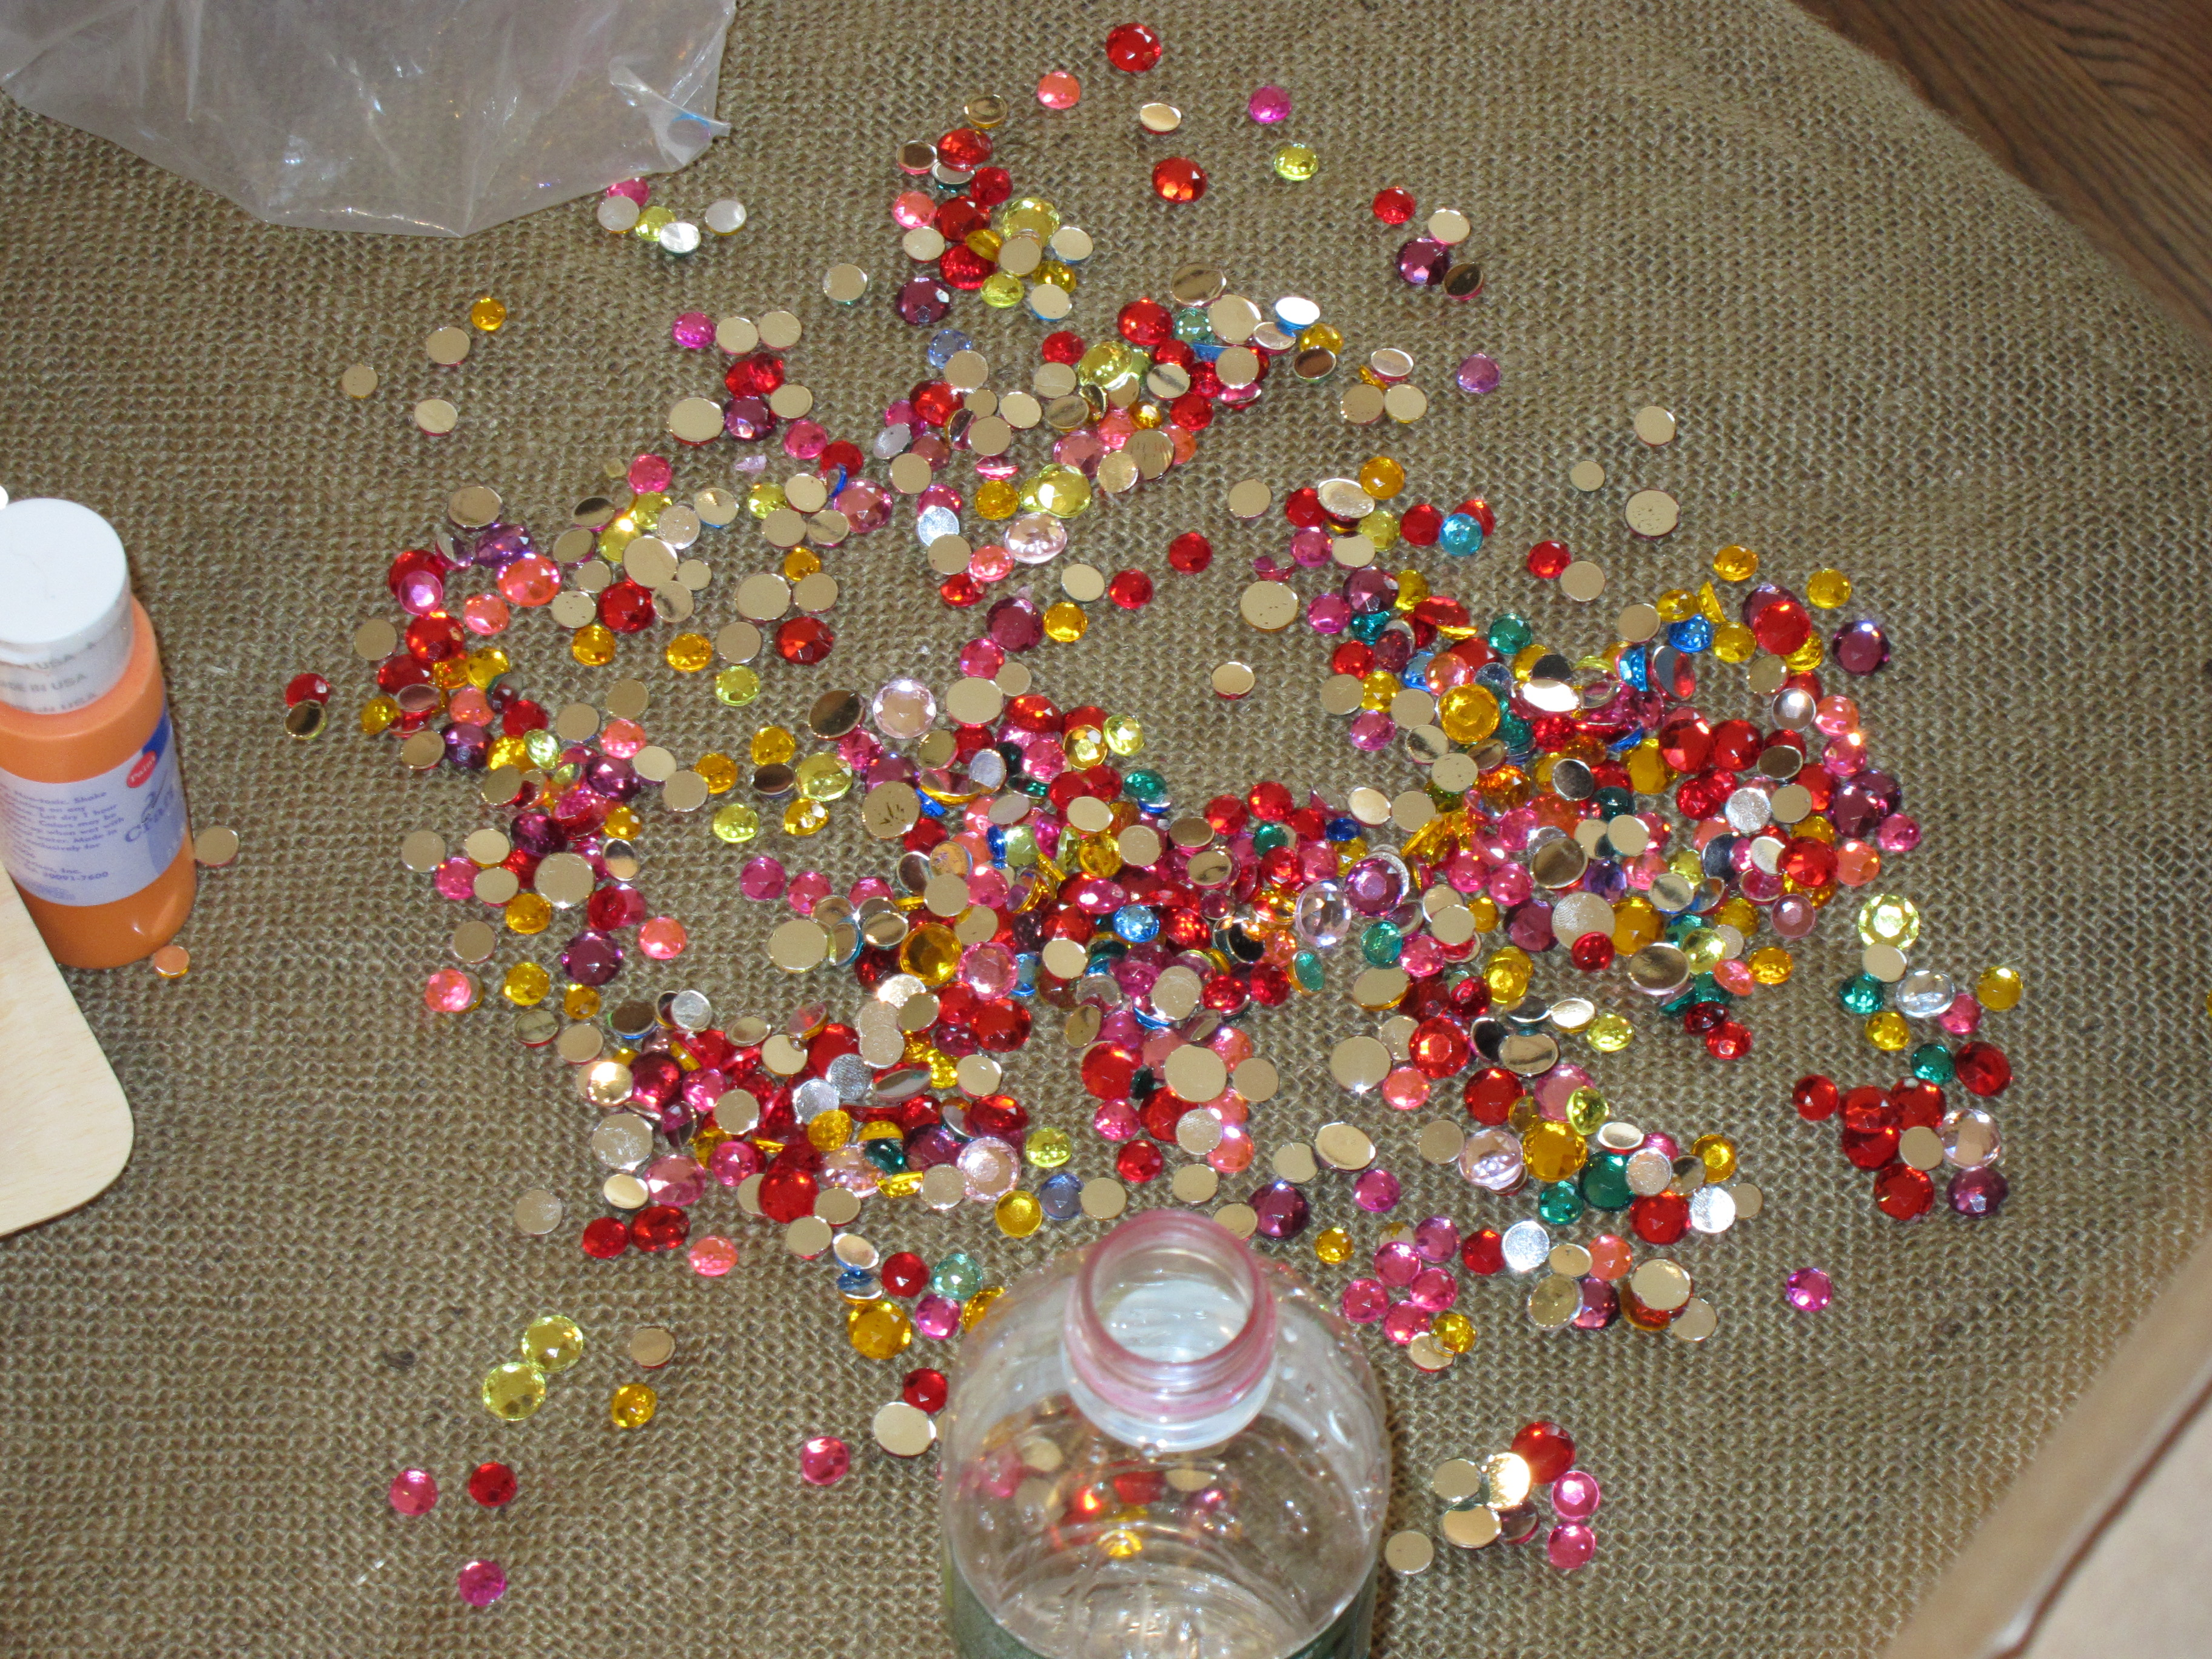 Different Bedazzling Options:   Cupped Sequin Multi-Pack ($3)  Assorted Sized Rhinestone Sequins ($8)  Chenille Kraft Sequins and Spangles Classroom Pack ($17)